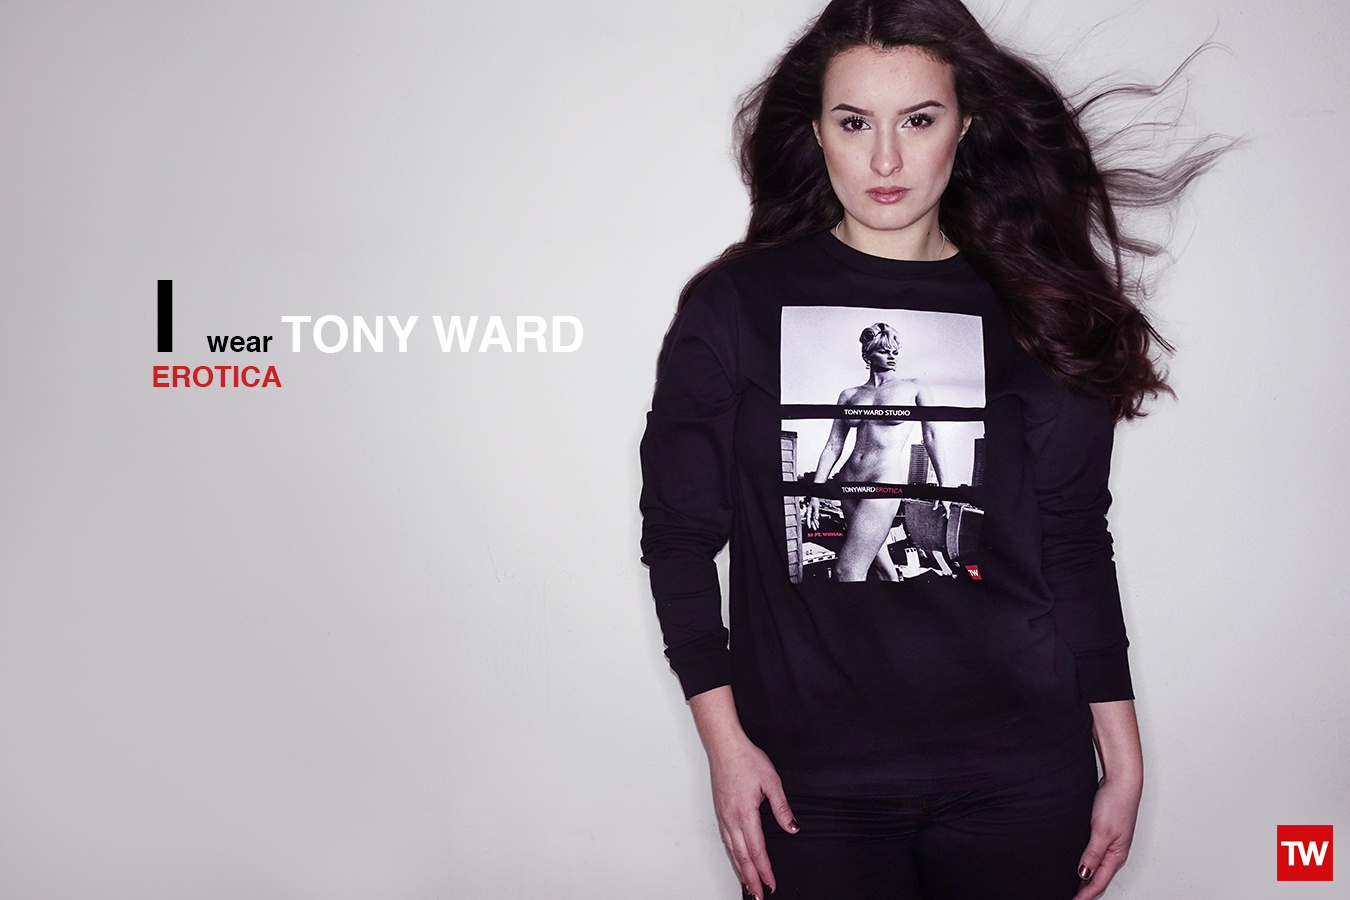 I Wear Tony Ward Erotica